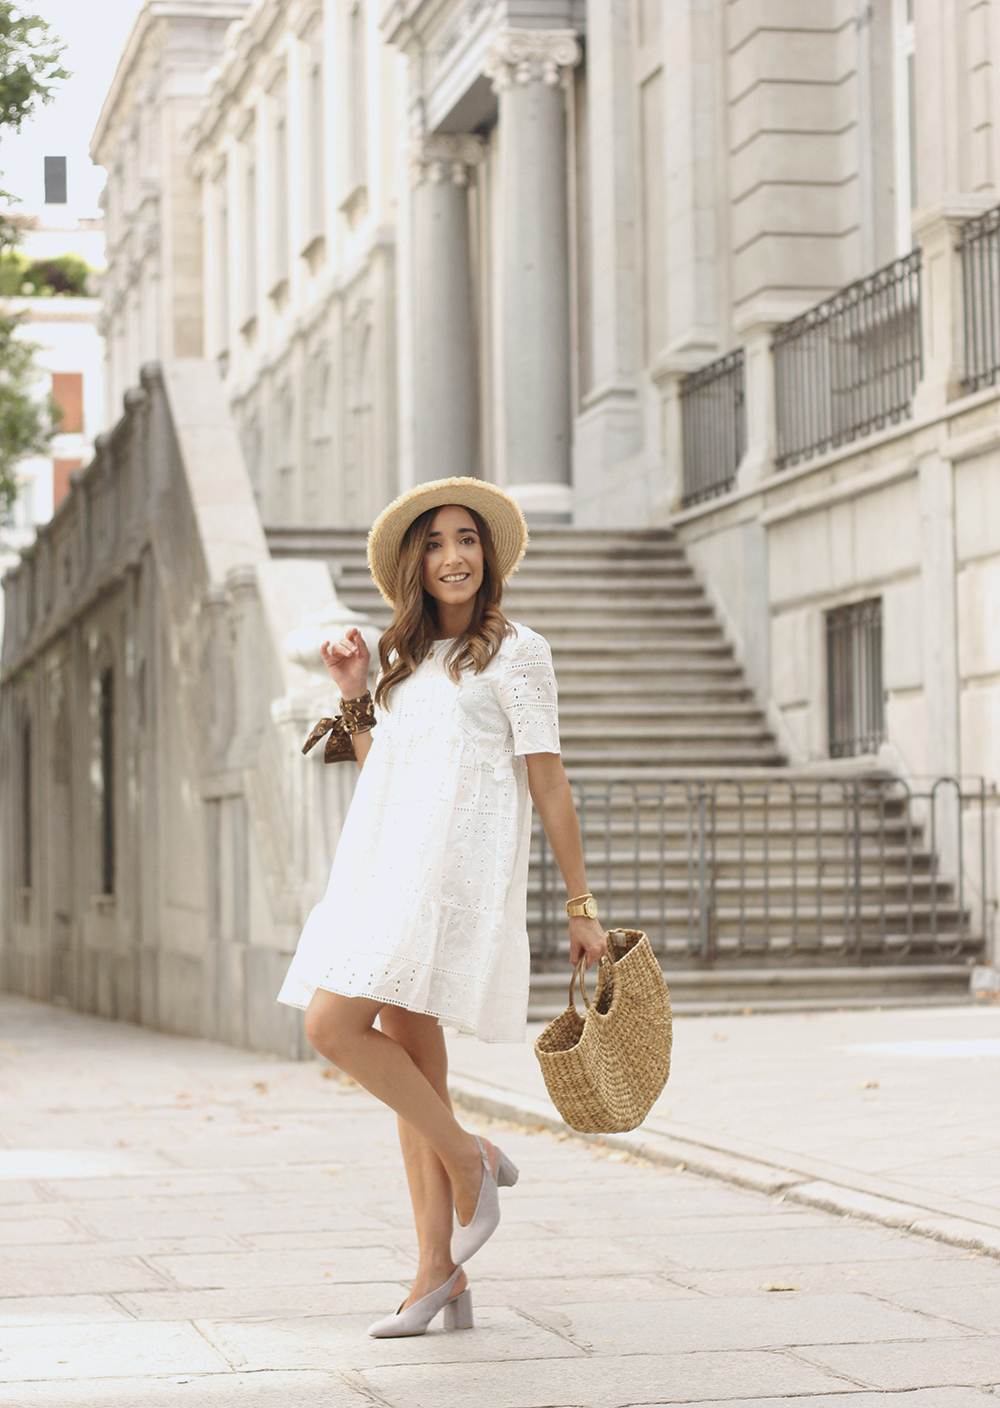 White summer dress canotier street style outfit 20194